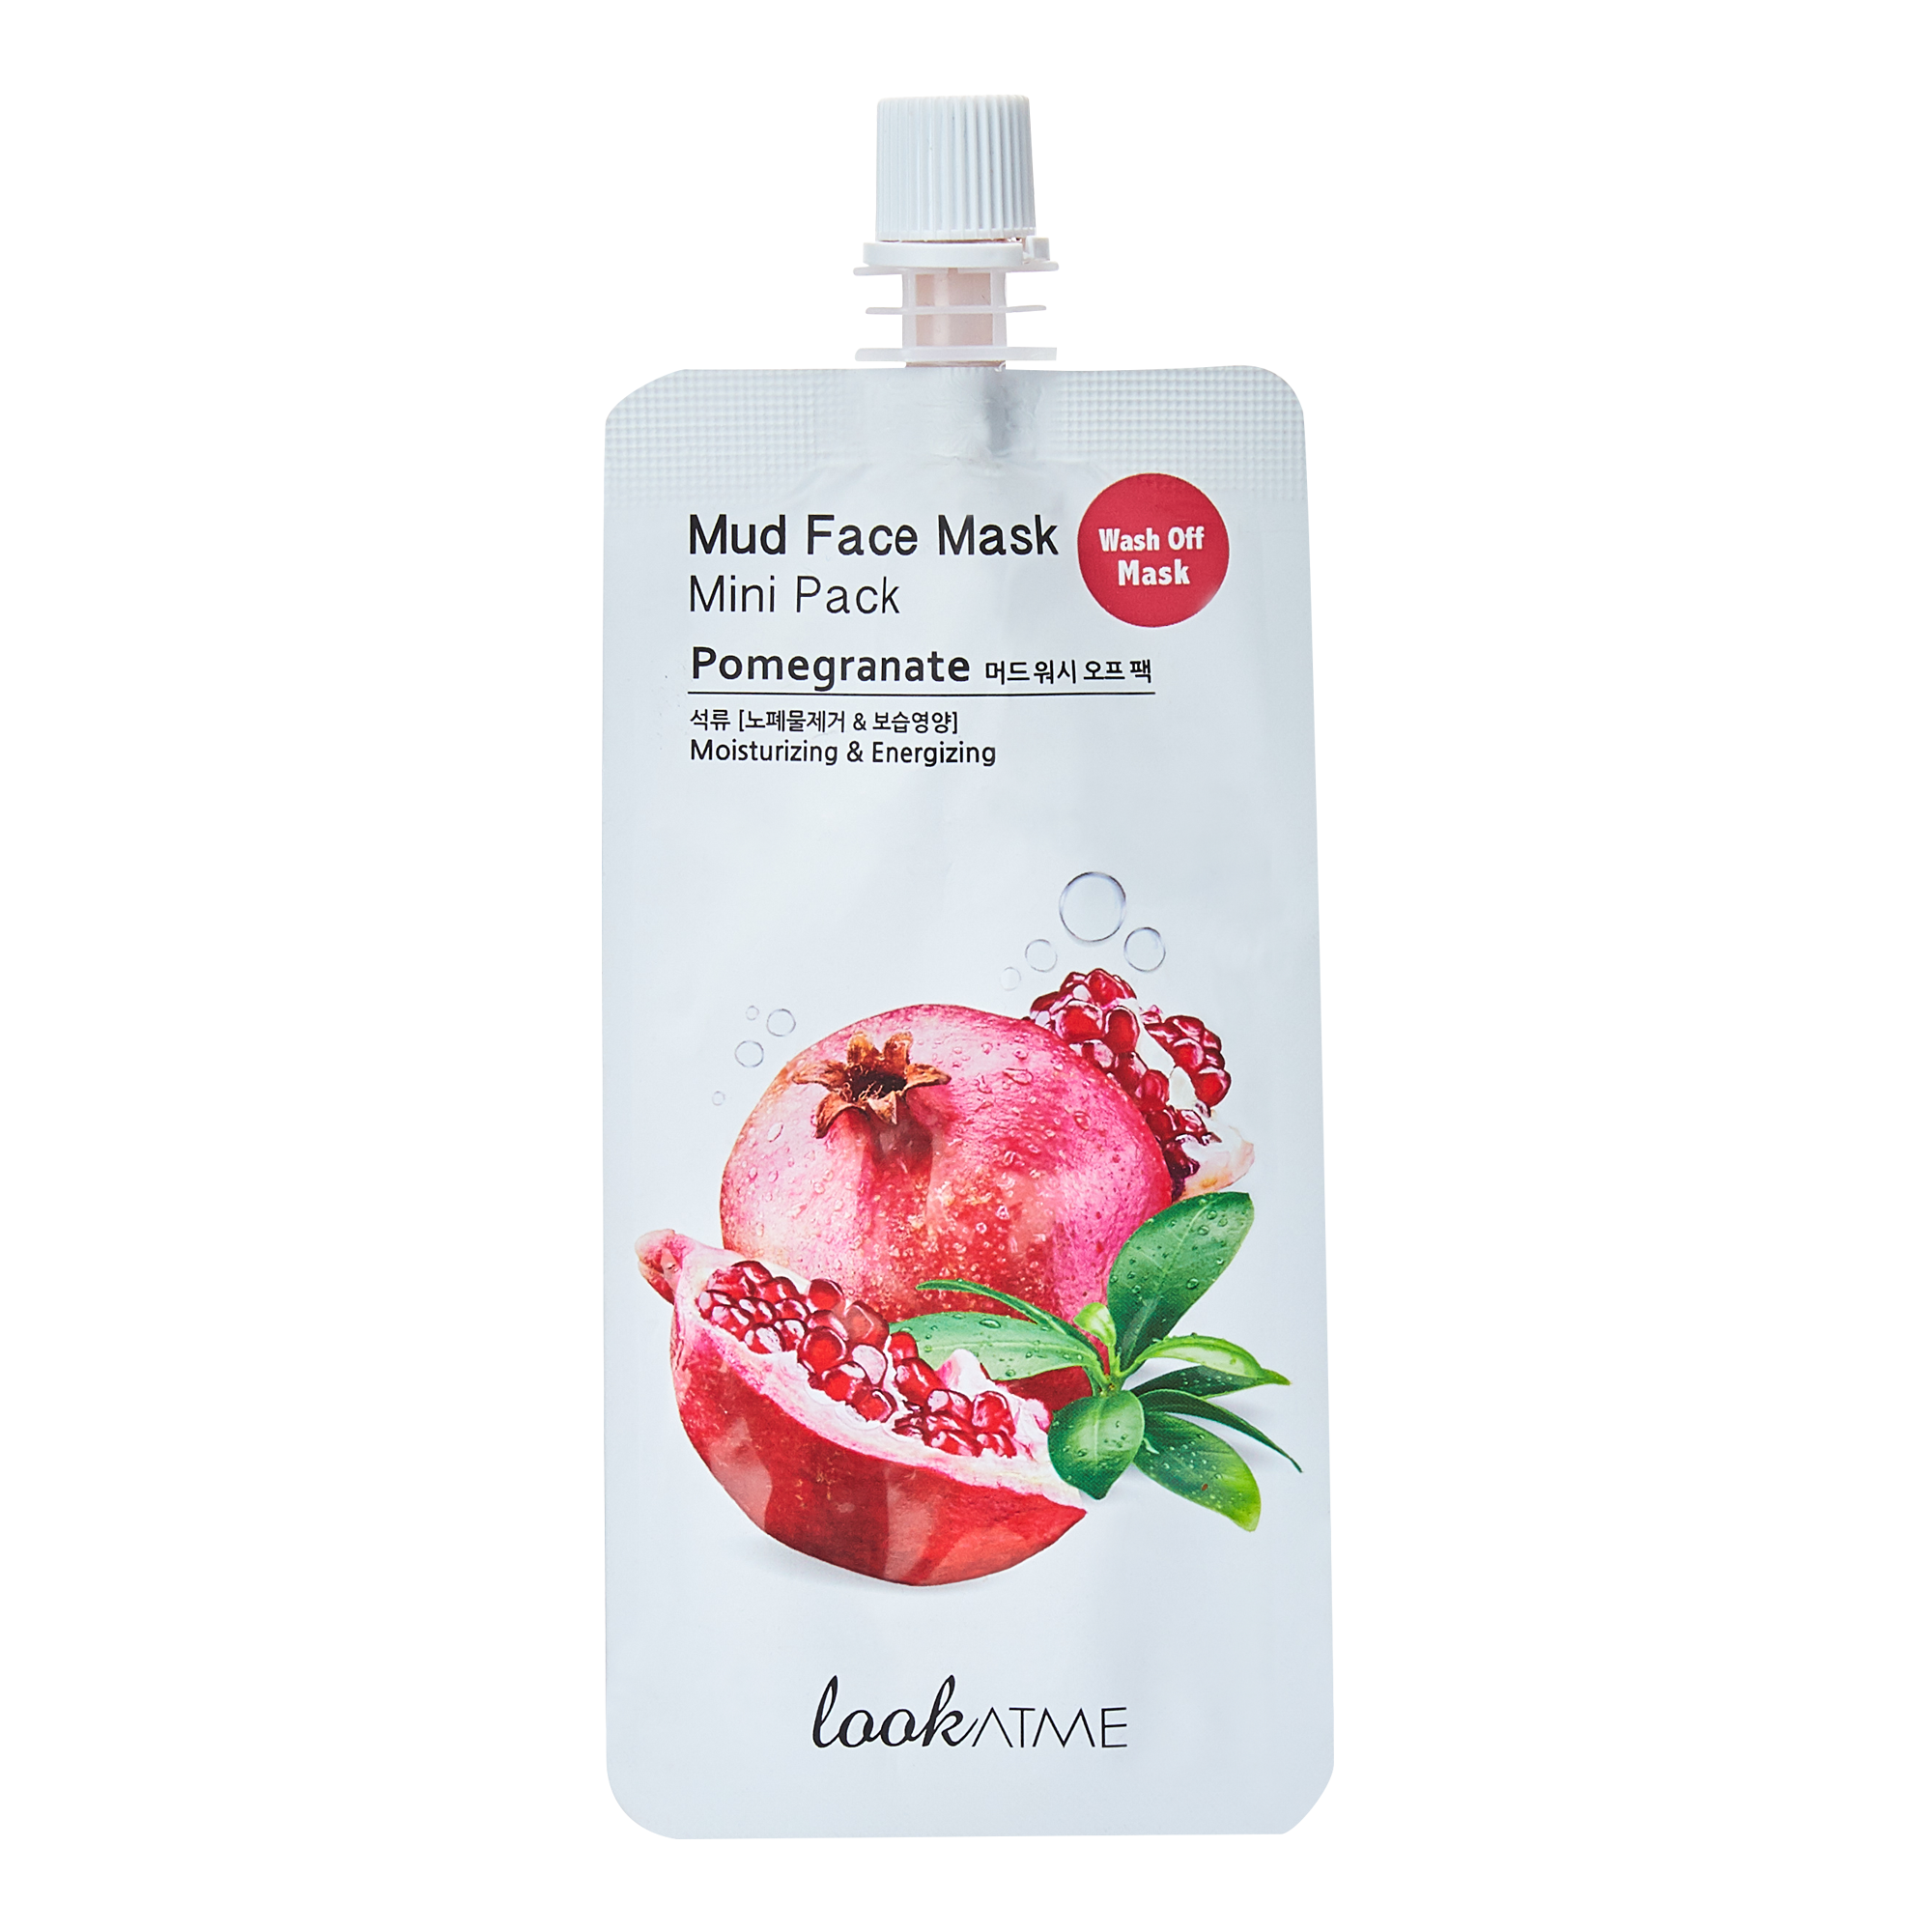 Pomegranate Mud Face Mask Mini Pack